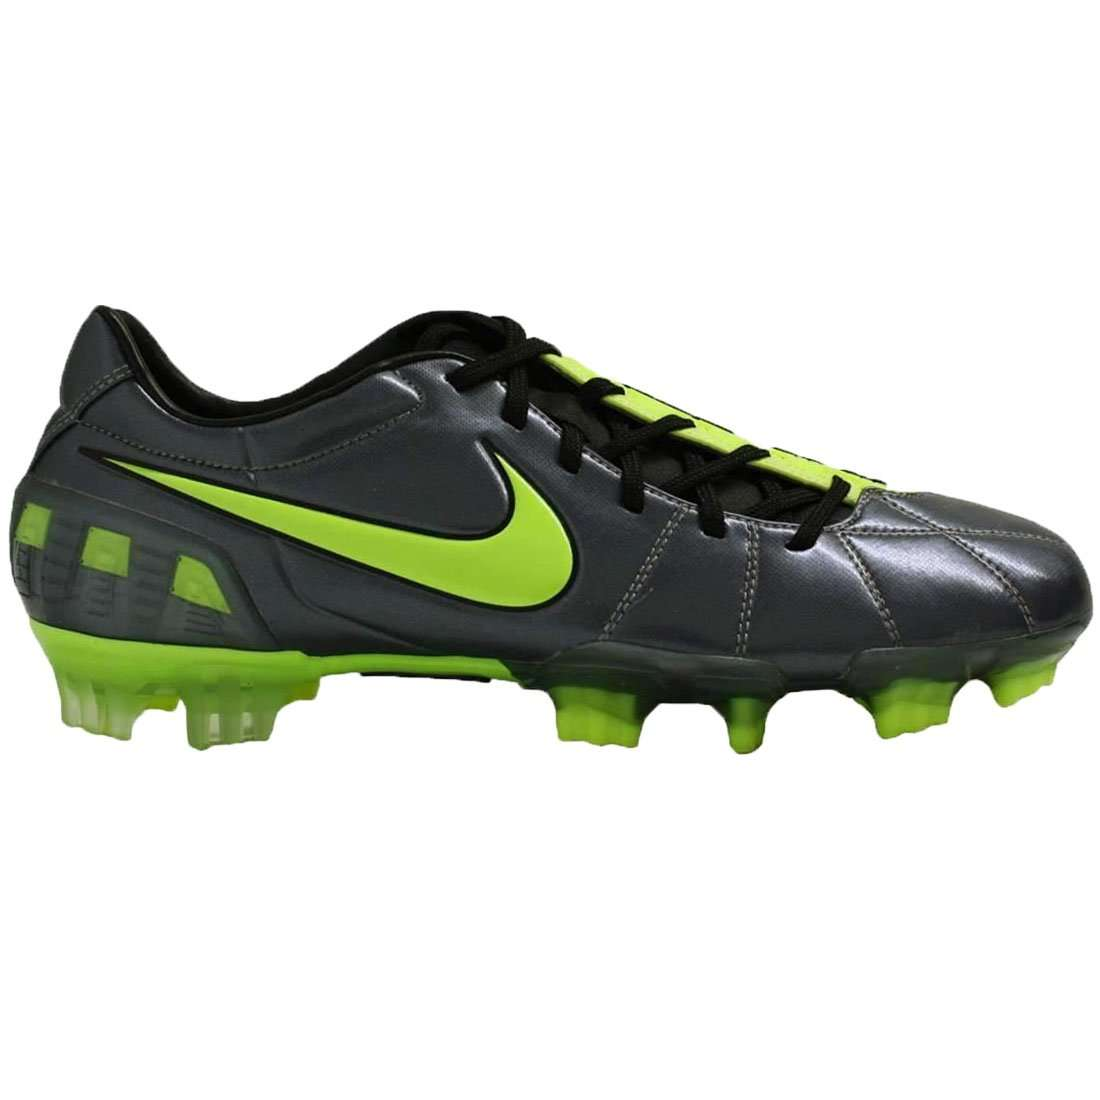 0896735f91ae8 Nike Total90 Laser III FG Soccer Cleats – League Outfitters